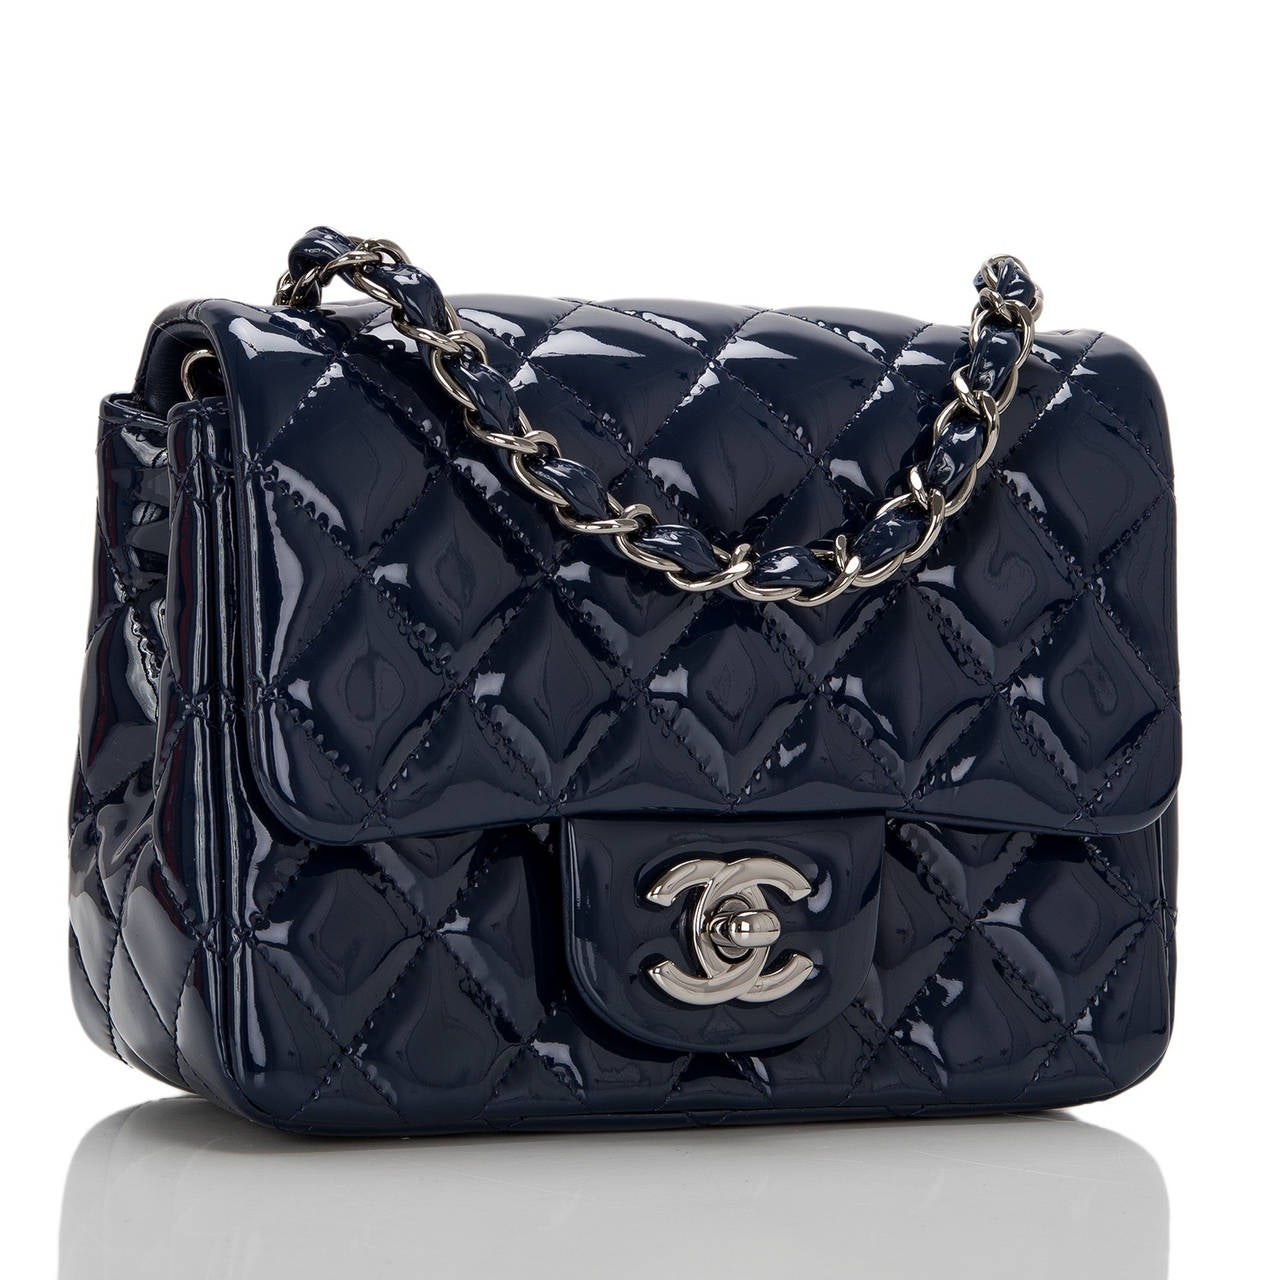 Chanel navy quilted Square Mini Classic flap bag with ruthenium hardware.